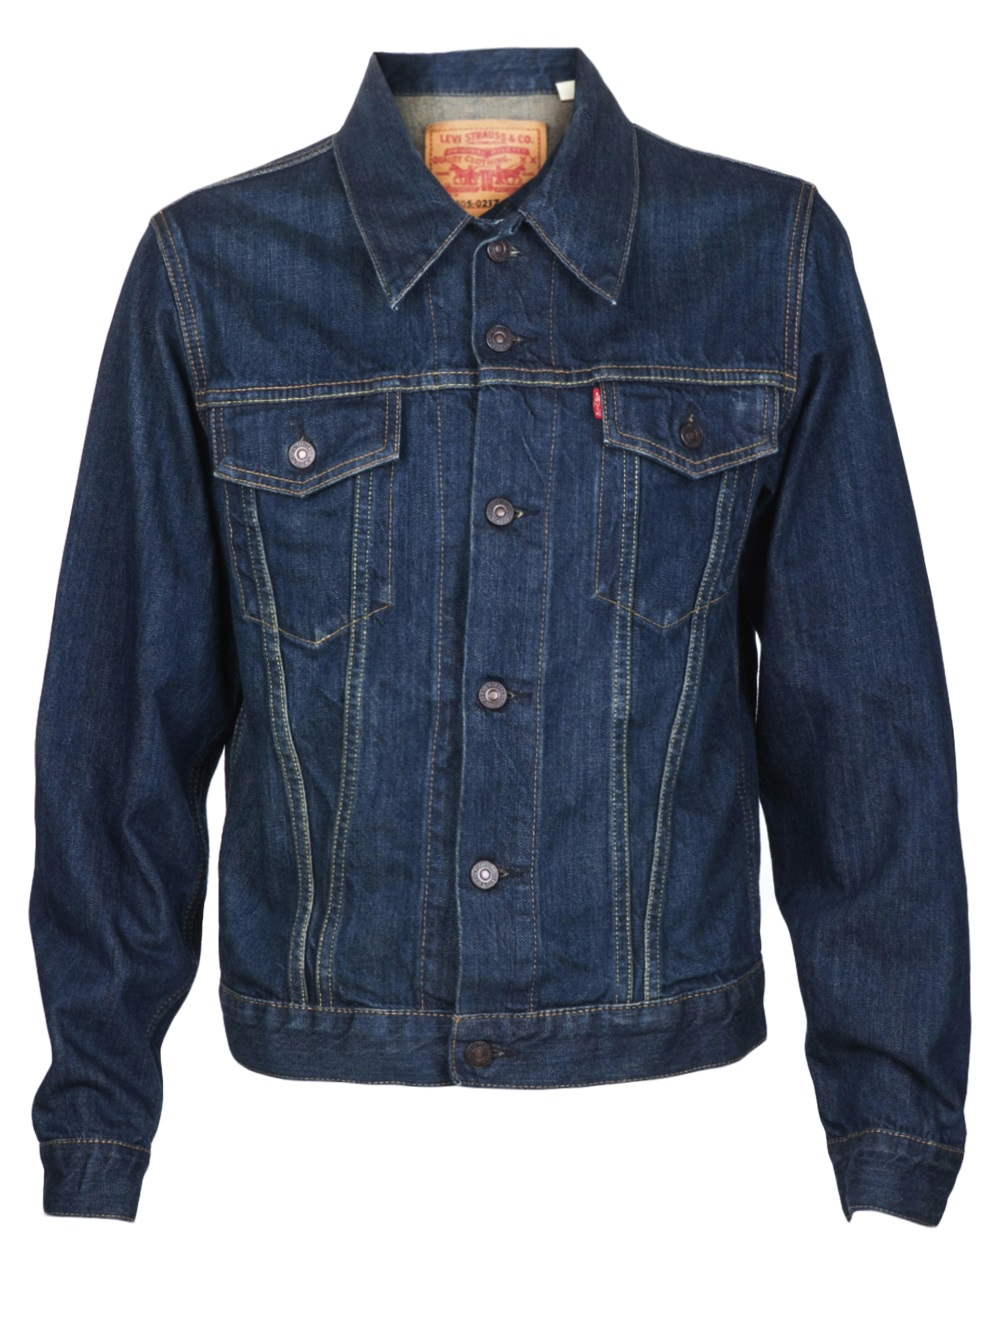 Levi 39 s type iii trucker jacket in blue for men lyst for Types of denim shirts